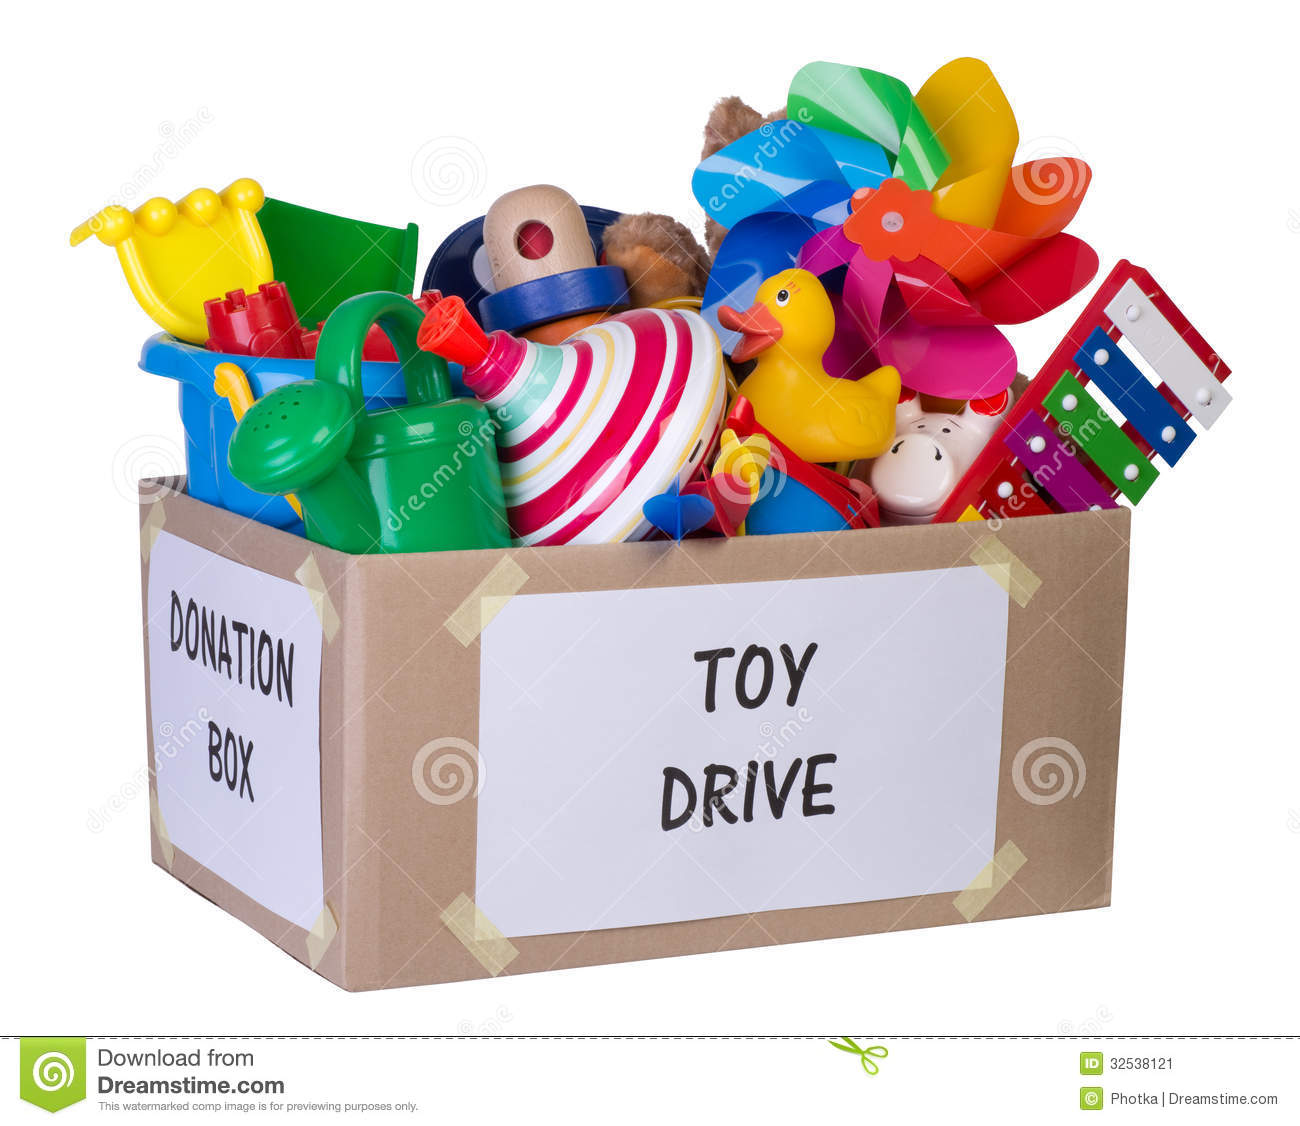 Toys For Donation : Clothing donations clipart suggest